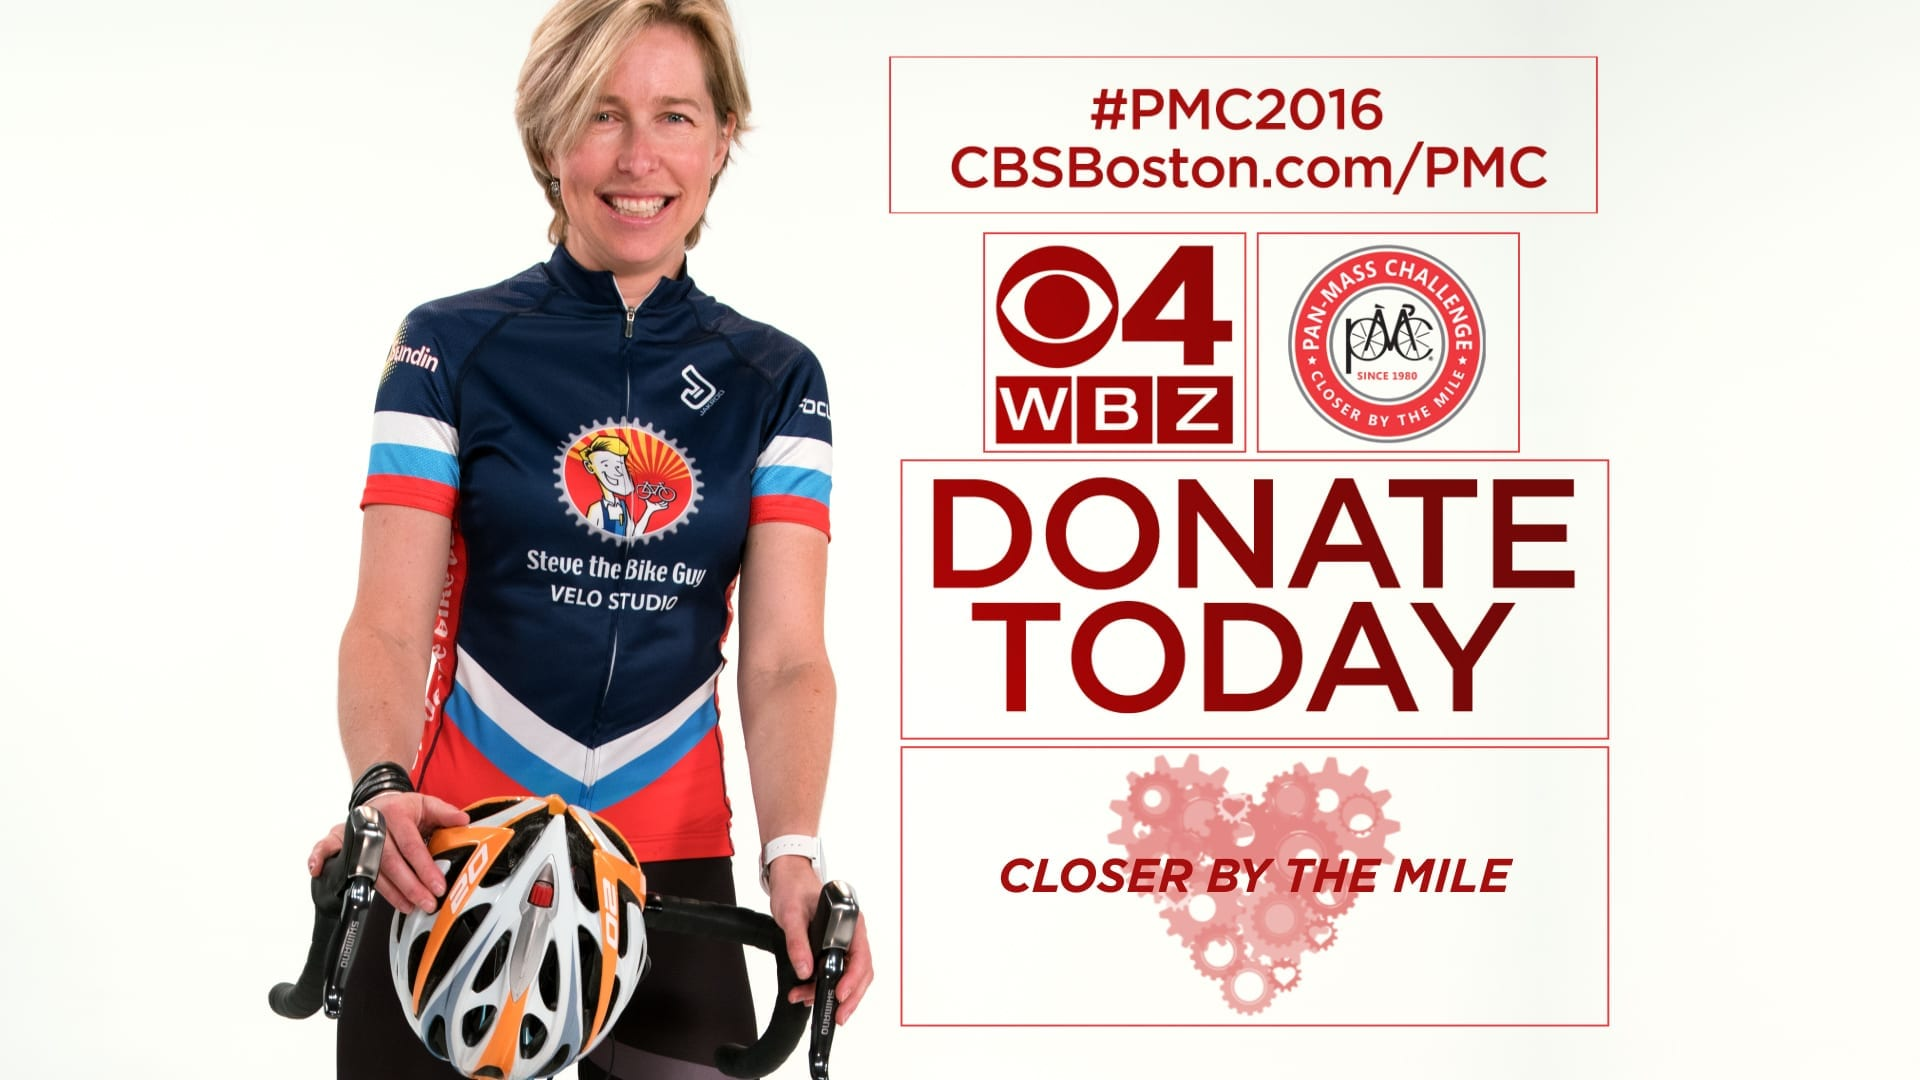 In support of the PMC